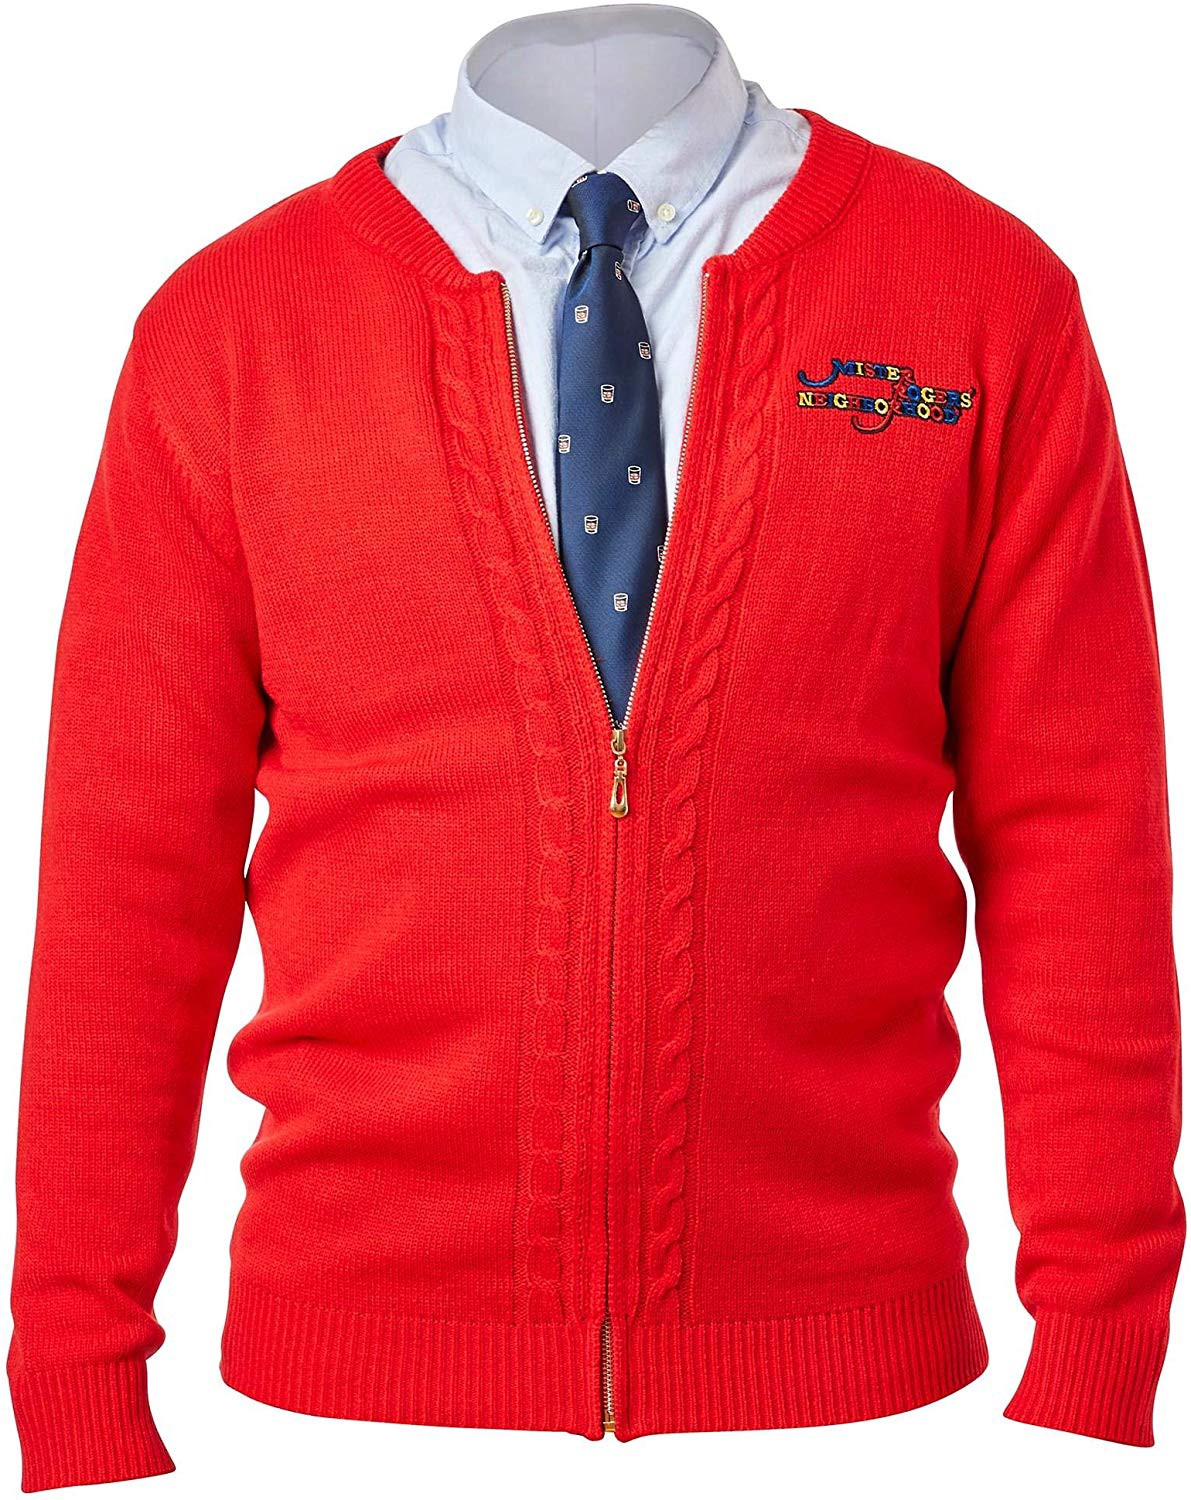 How To Dress Exactly Like Mister Rogers By Nick Riccardo Medium